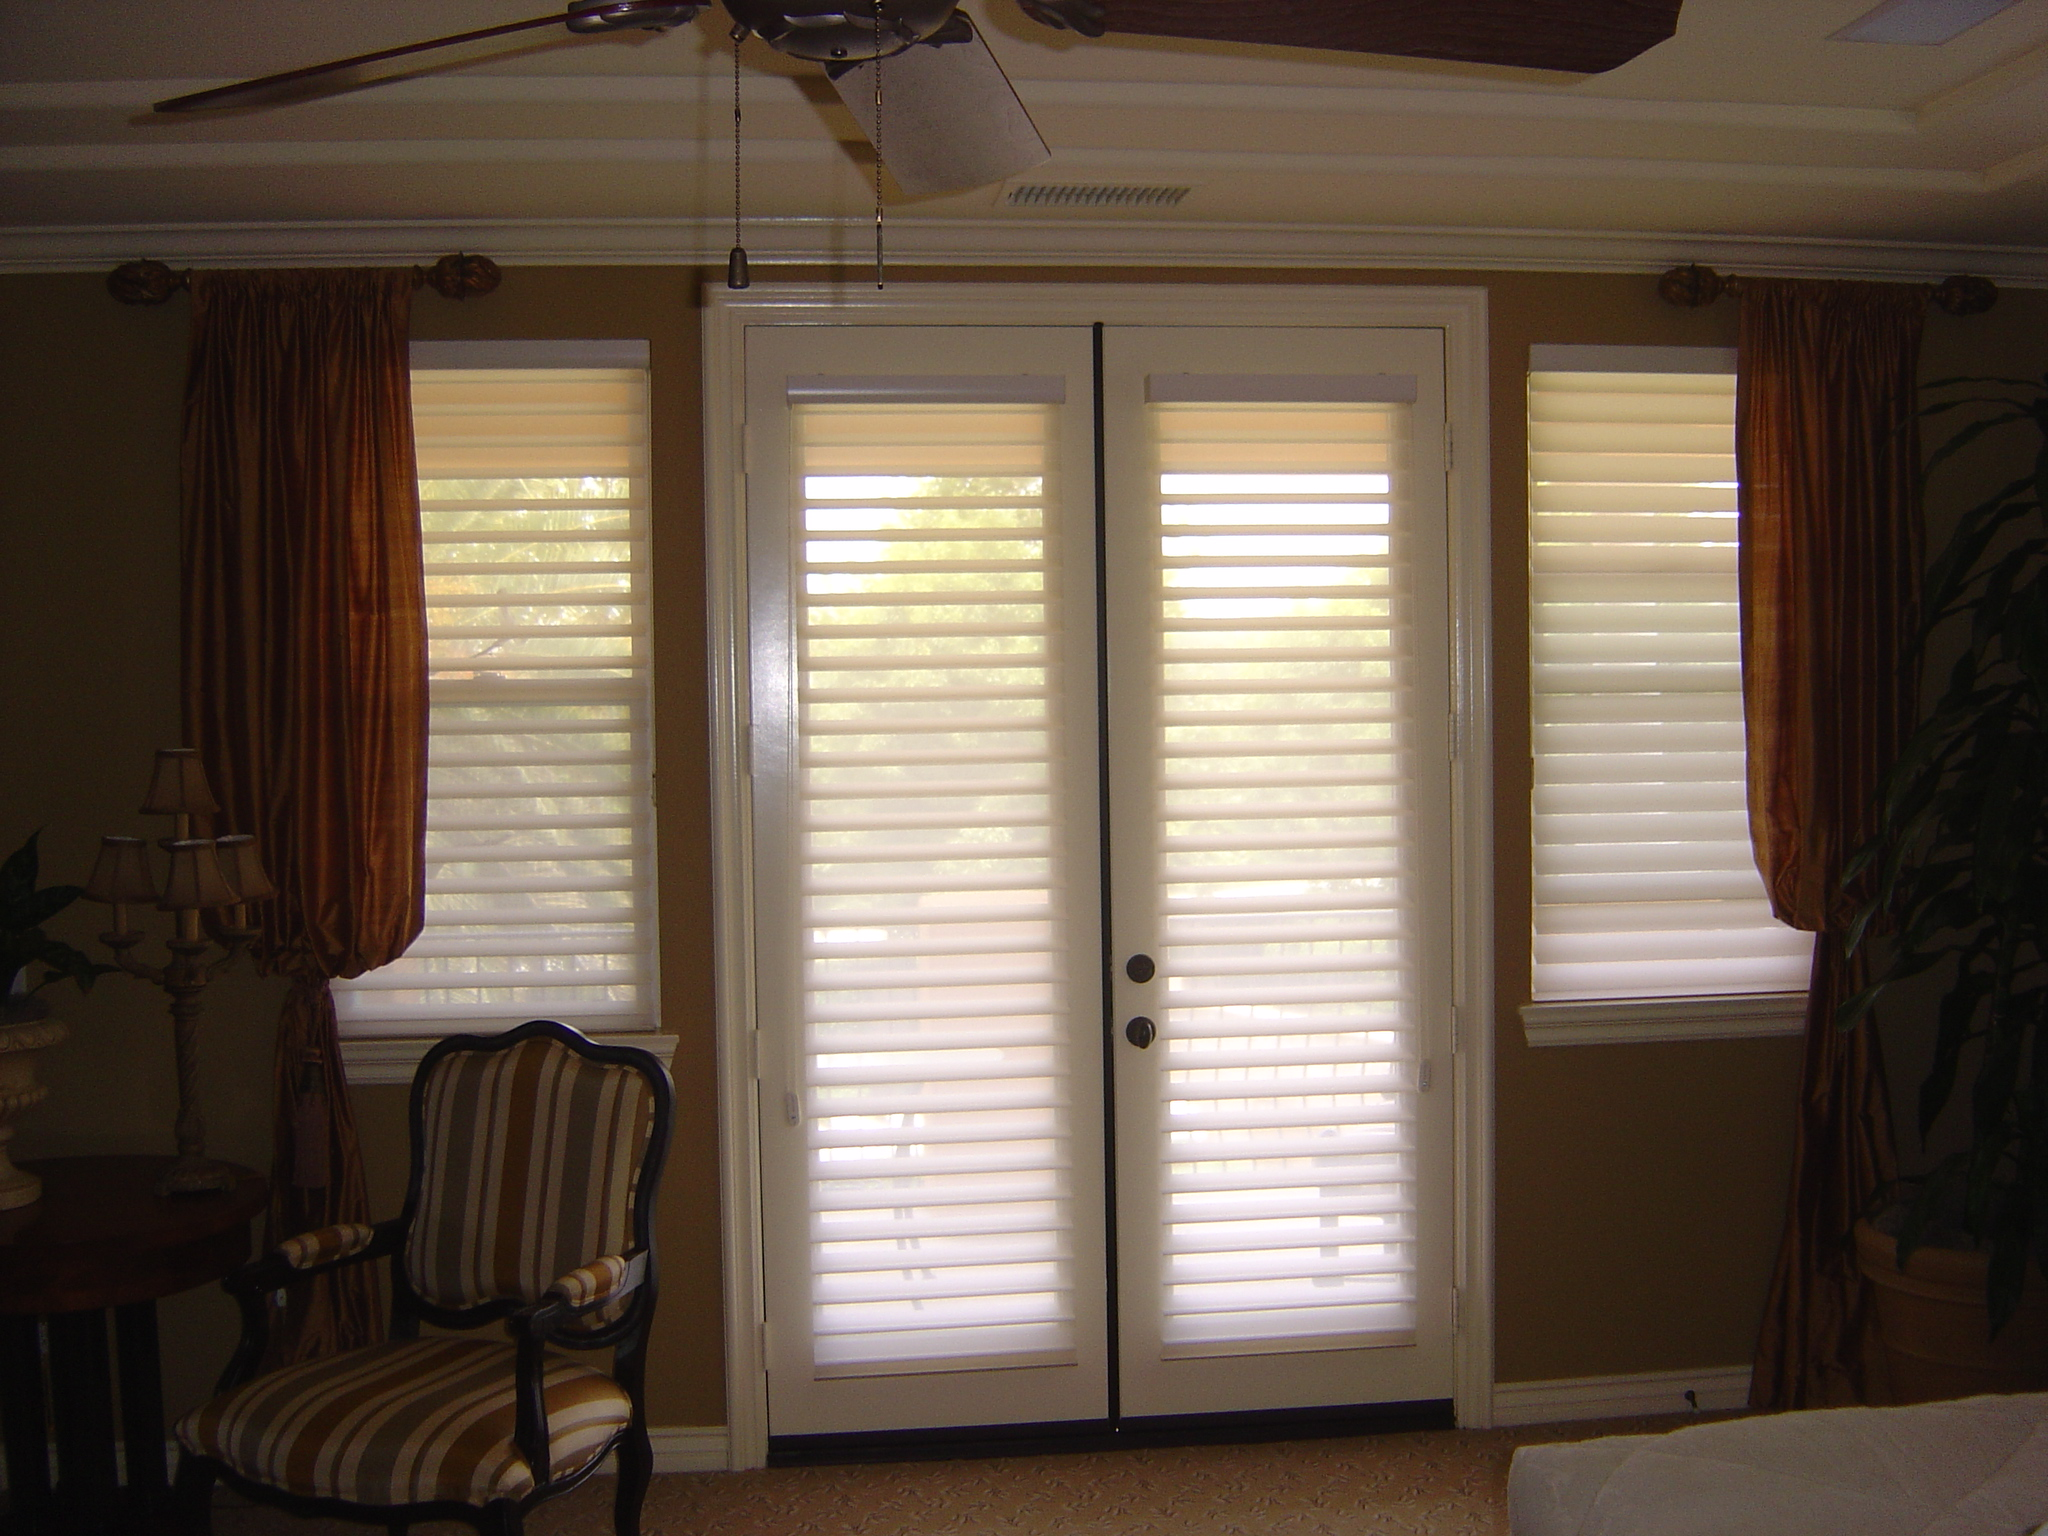 Sliding French Doors Door Window Curtains. Second-sun.co